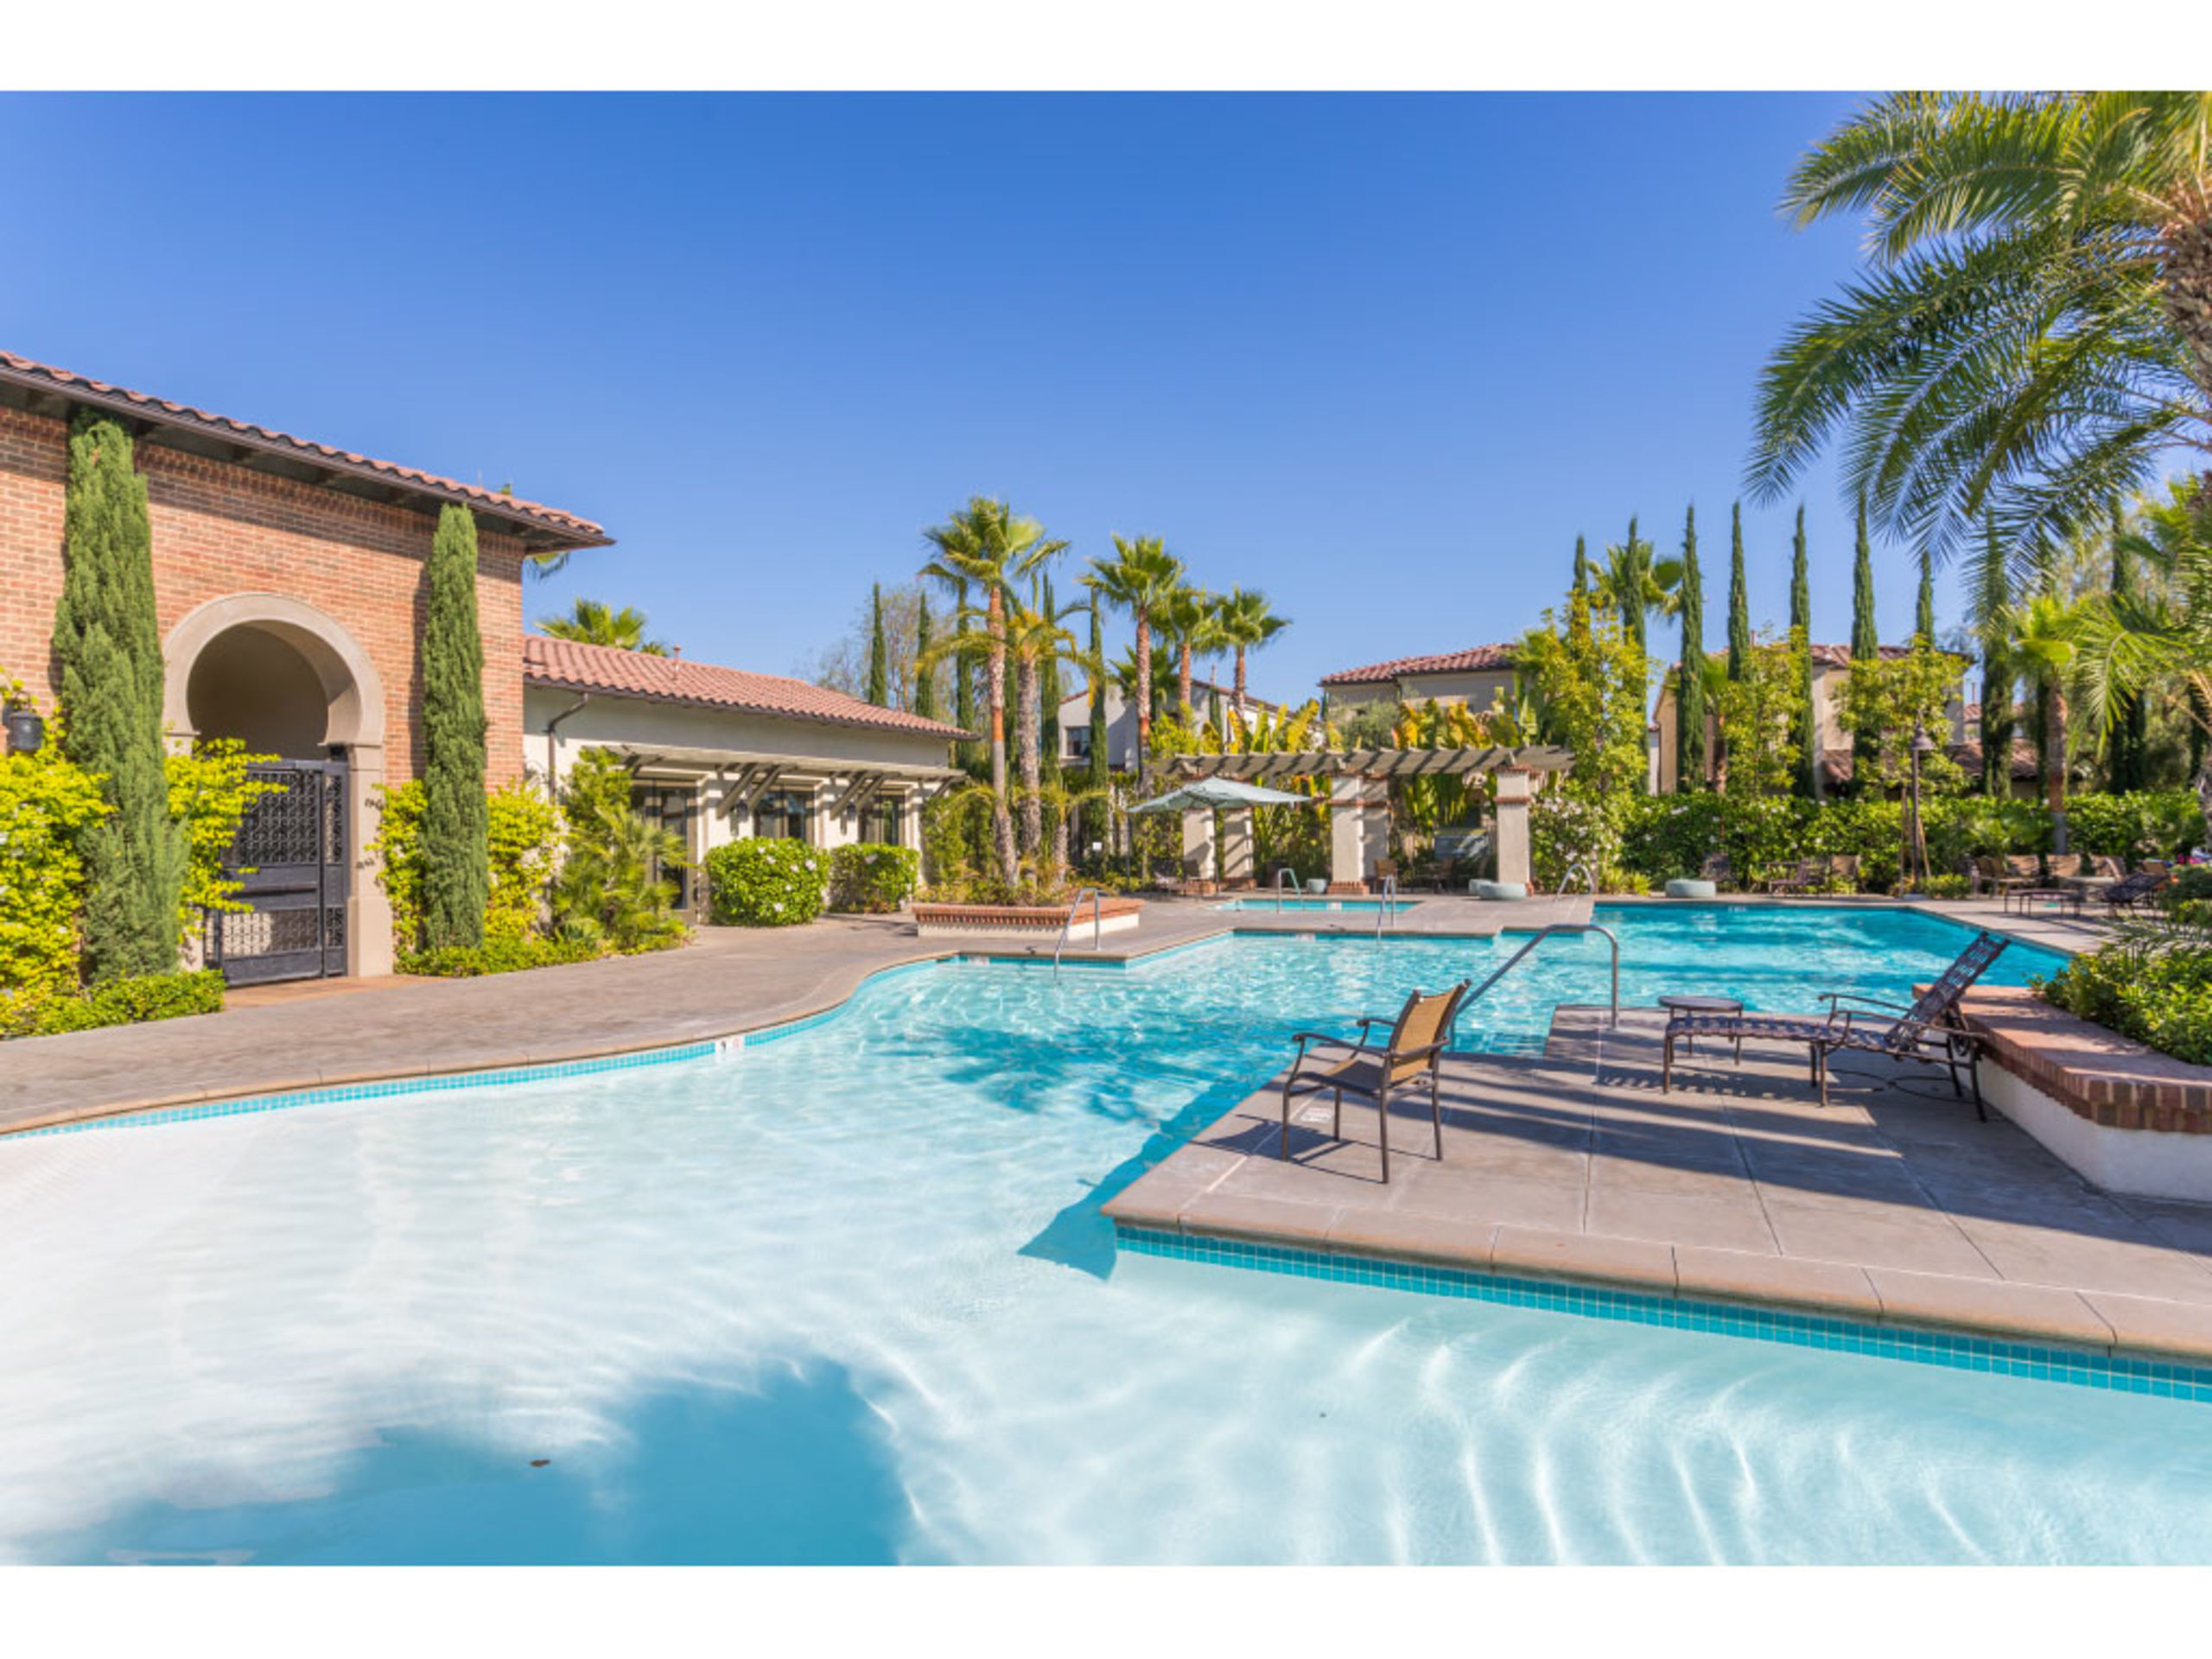 Resort-style Pool in Anaheim